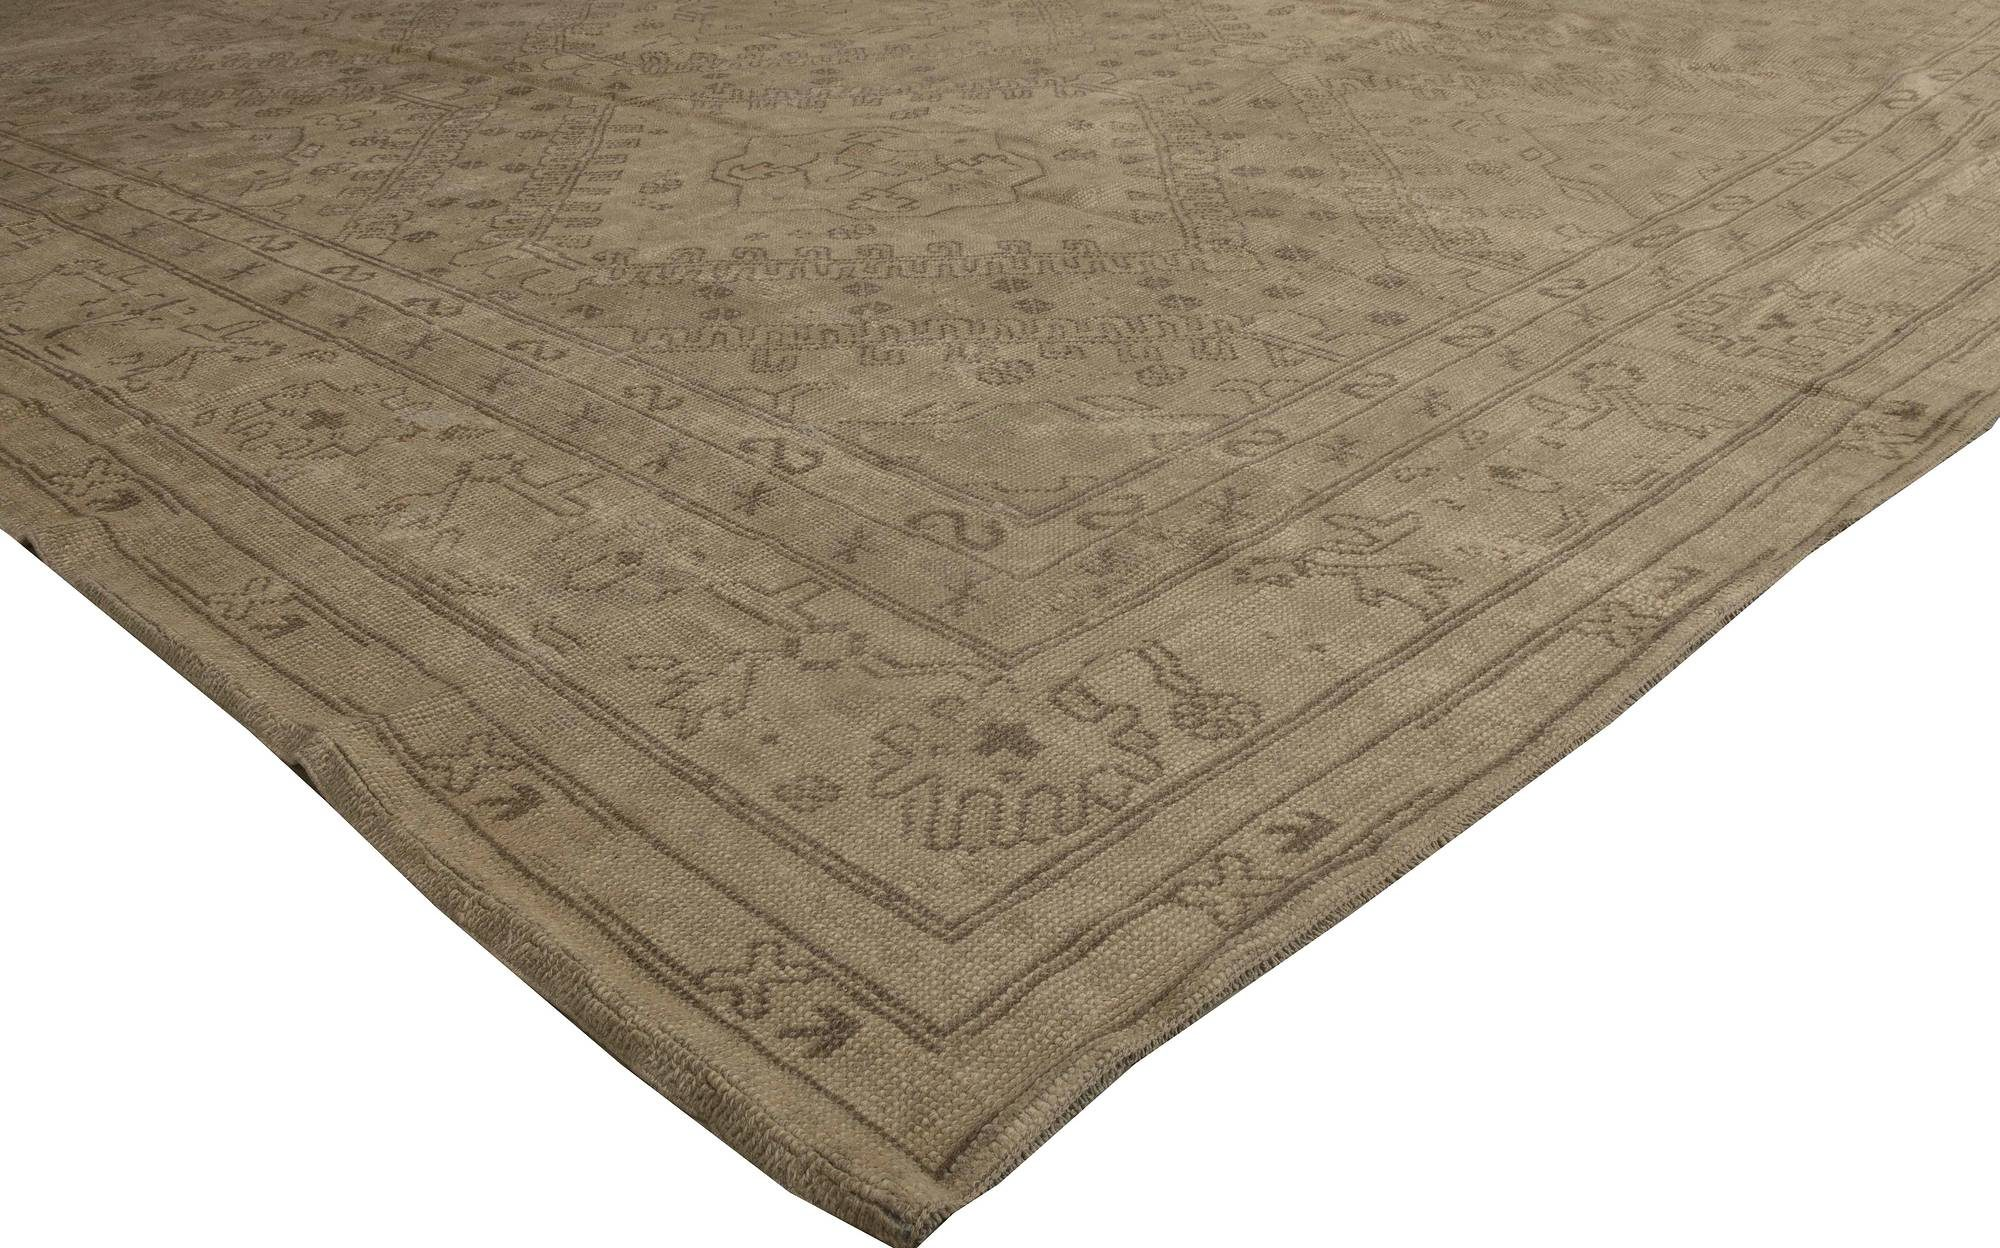 Antique Turkish Oushak Dark and Light Brown Handwoven Wool Rug BB5605